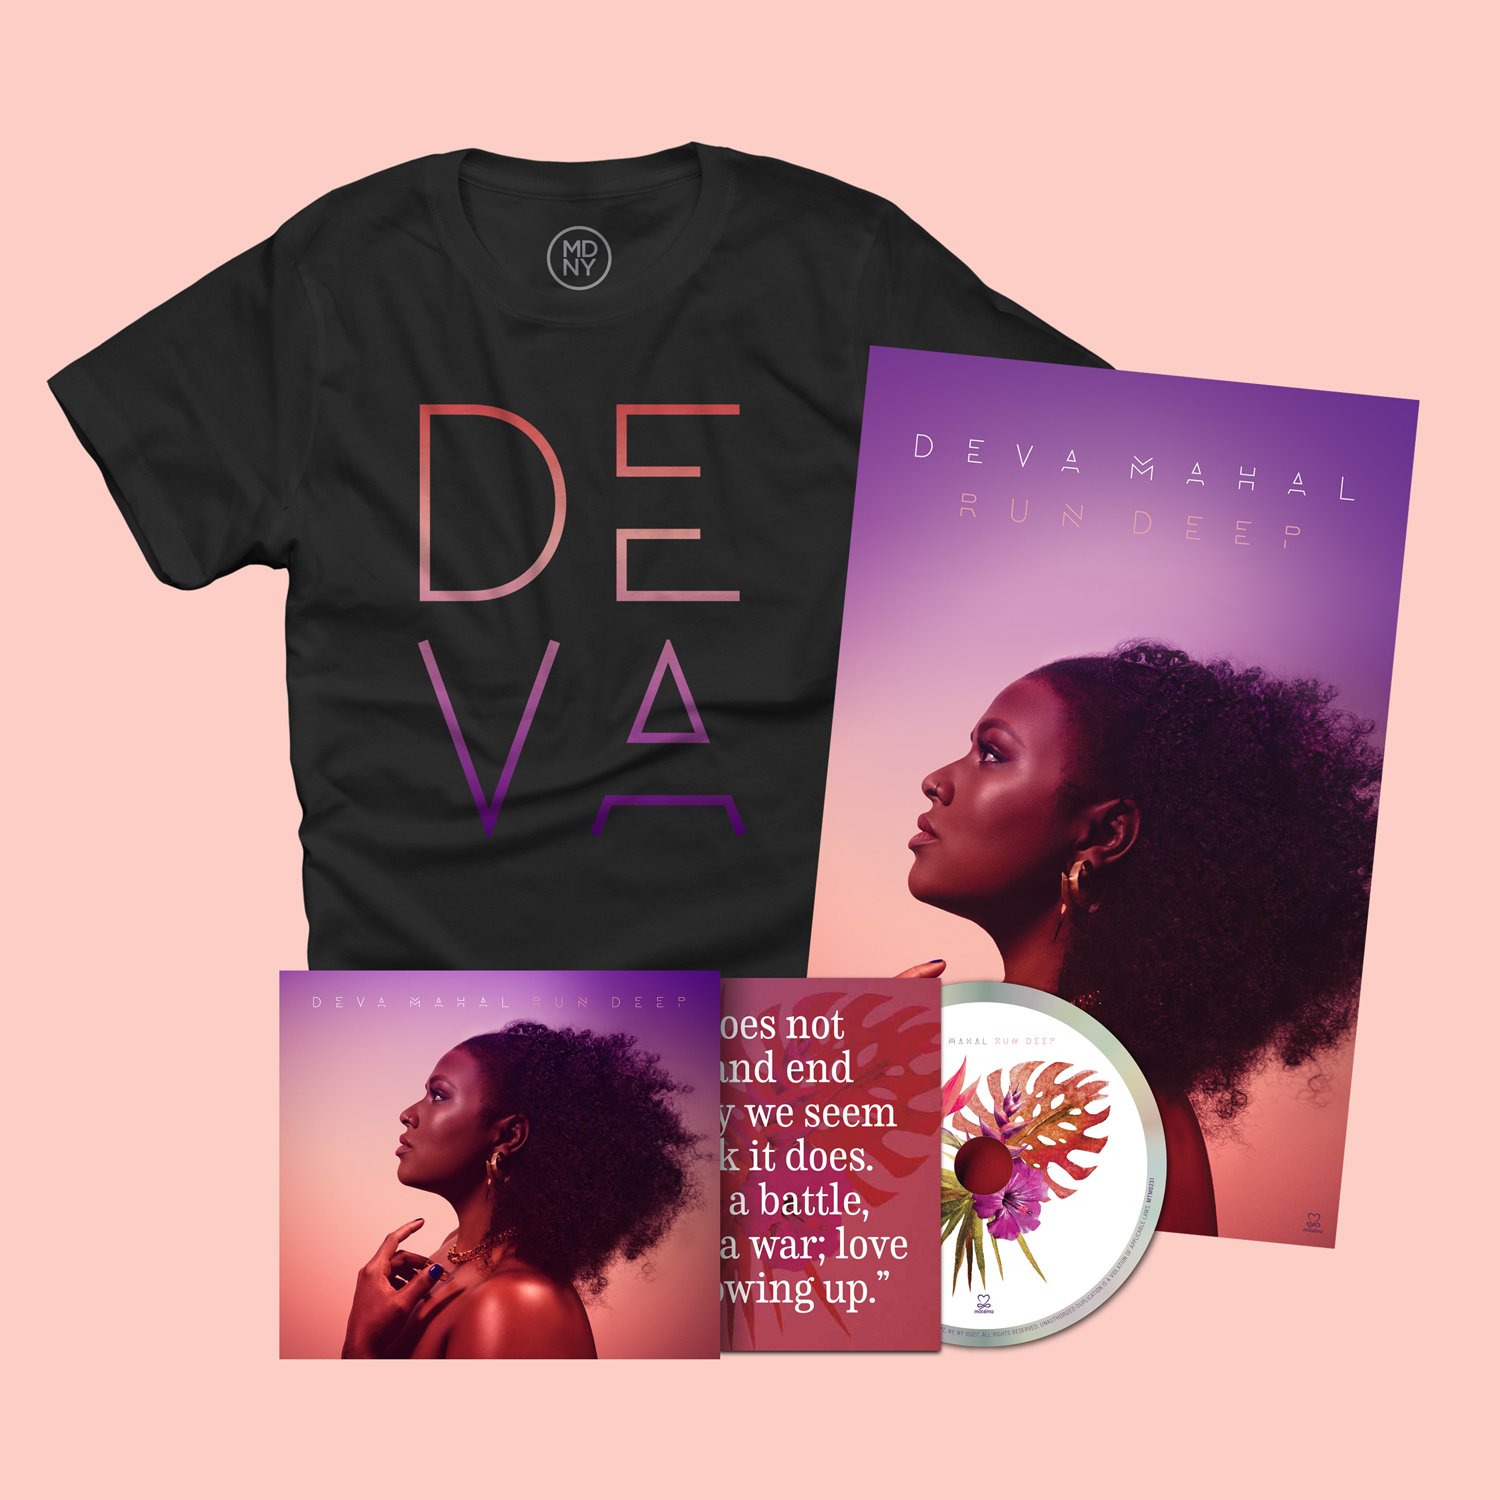 Run Deep - CD, Poster + T-Shirt Bundle